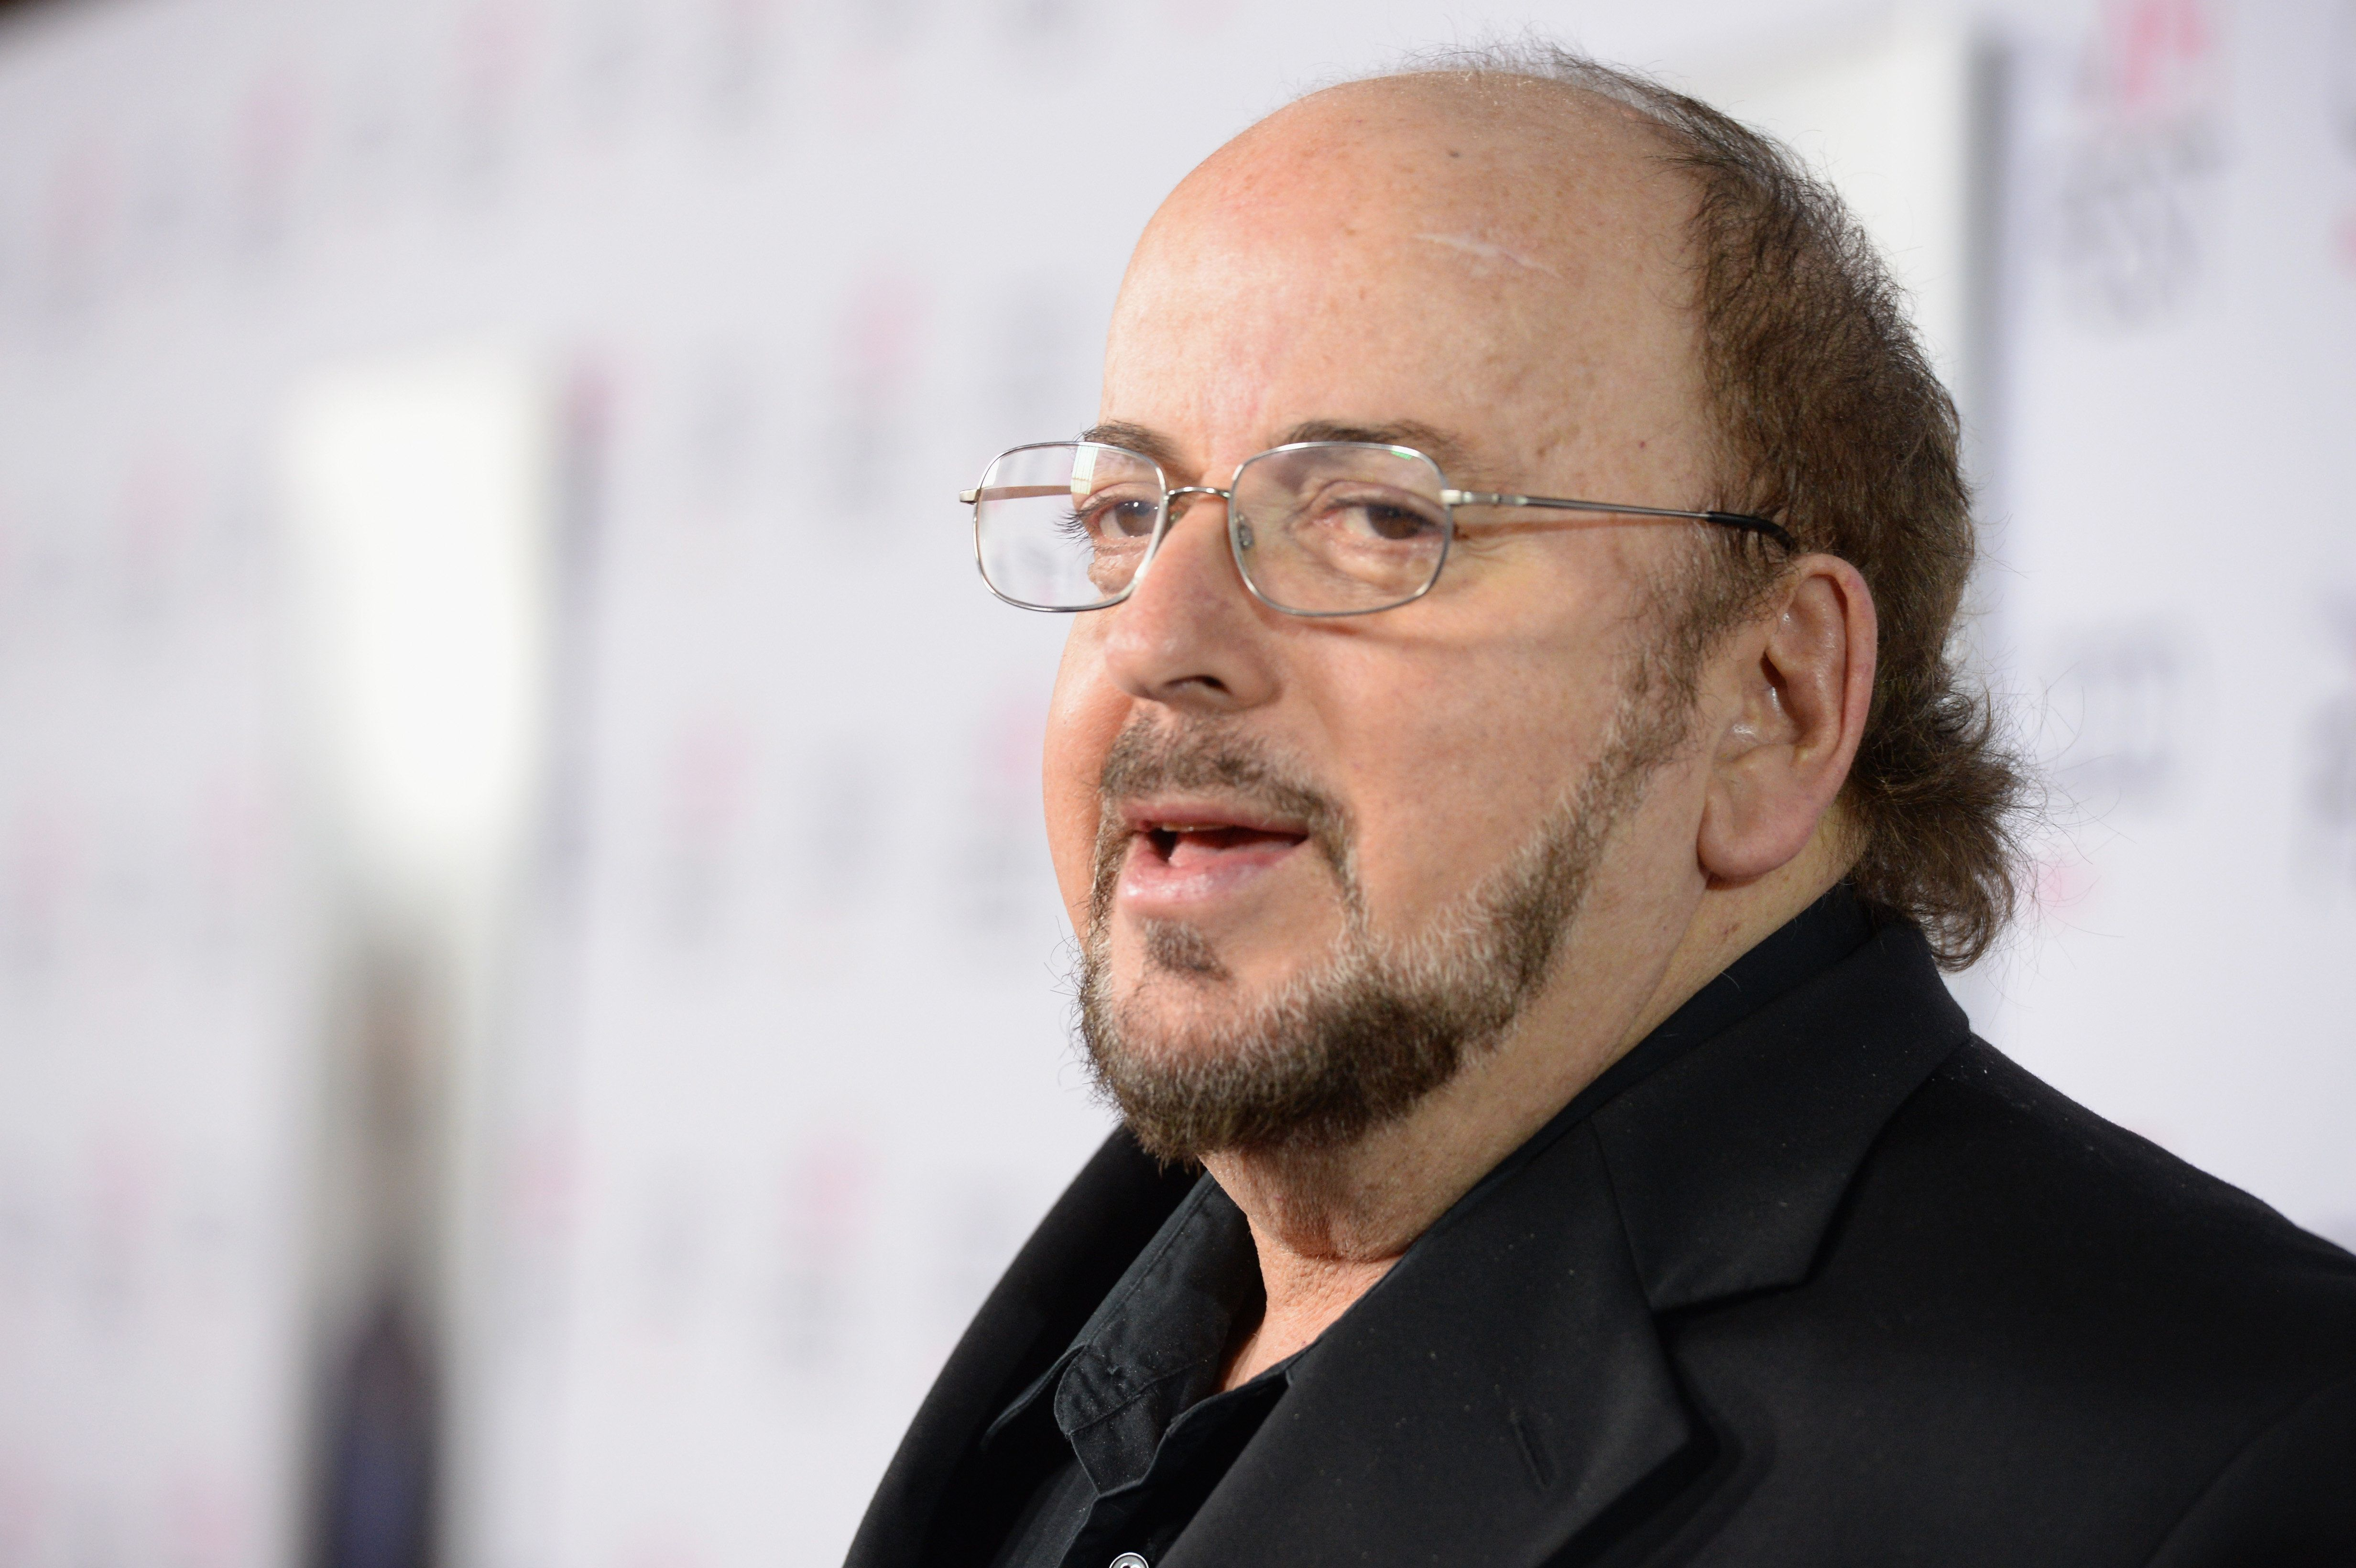 LOS ANGELES, CA - NOVEMBER 10:  Executive producer James Toback attends the screening of 'The Gambler' during the AFI FEST 2014 presented by Audi at Dolby Theatre on November 10, 2014 in Hollywood, California.  (Photo by Michael Kovac/Getty Images for AFI)